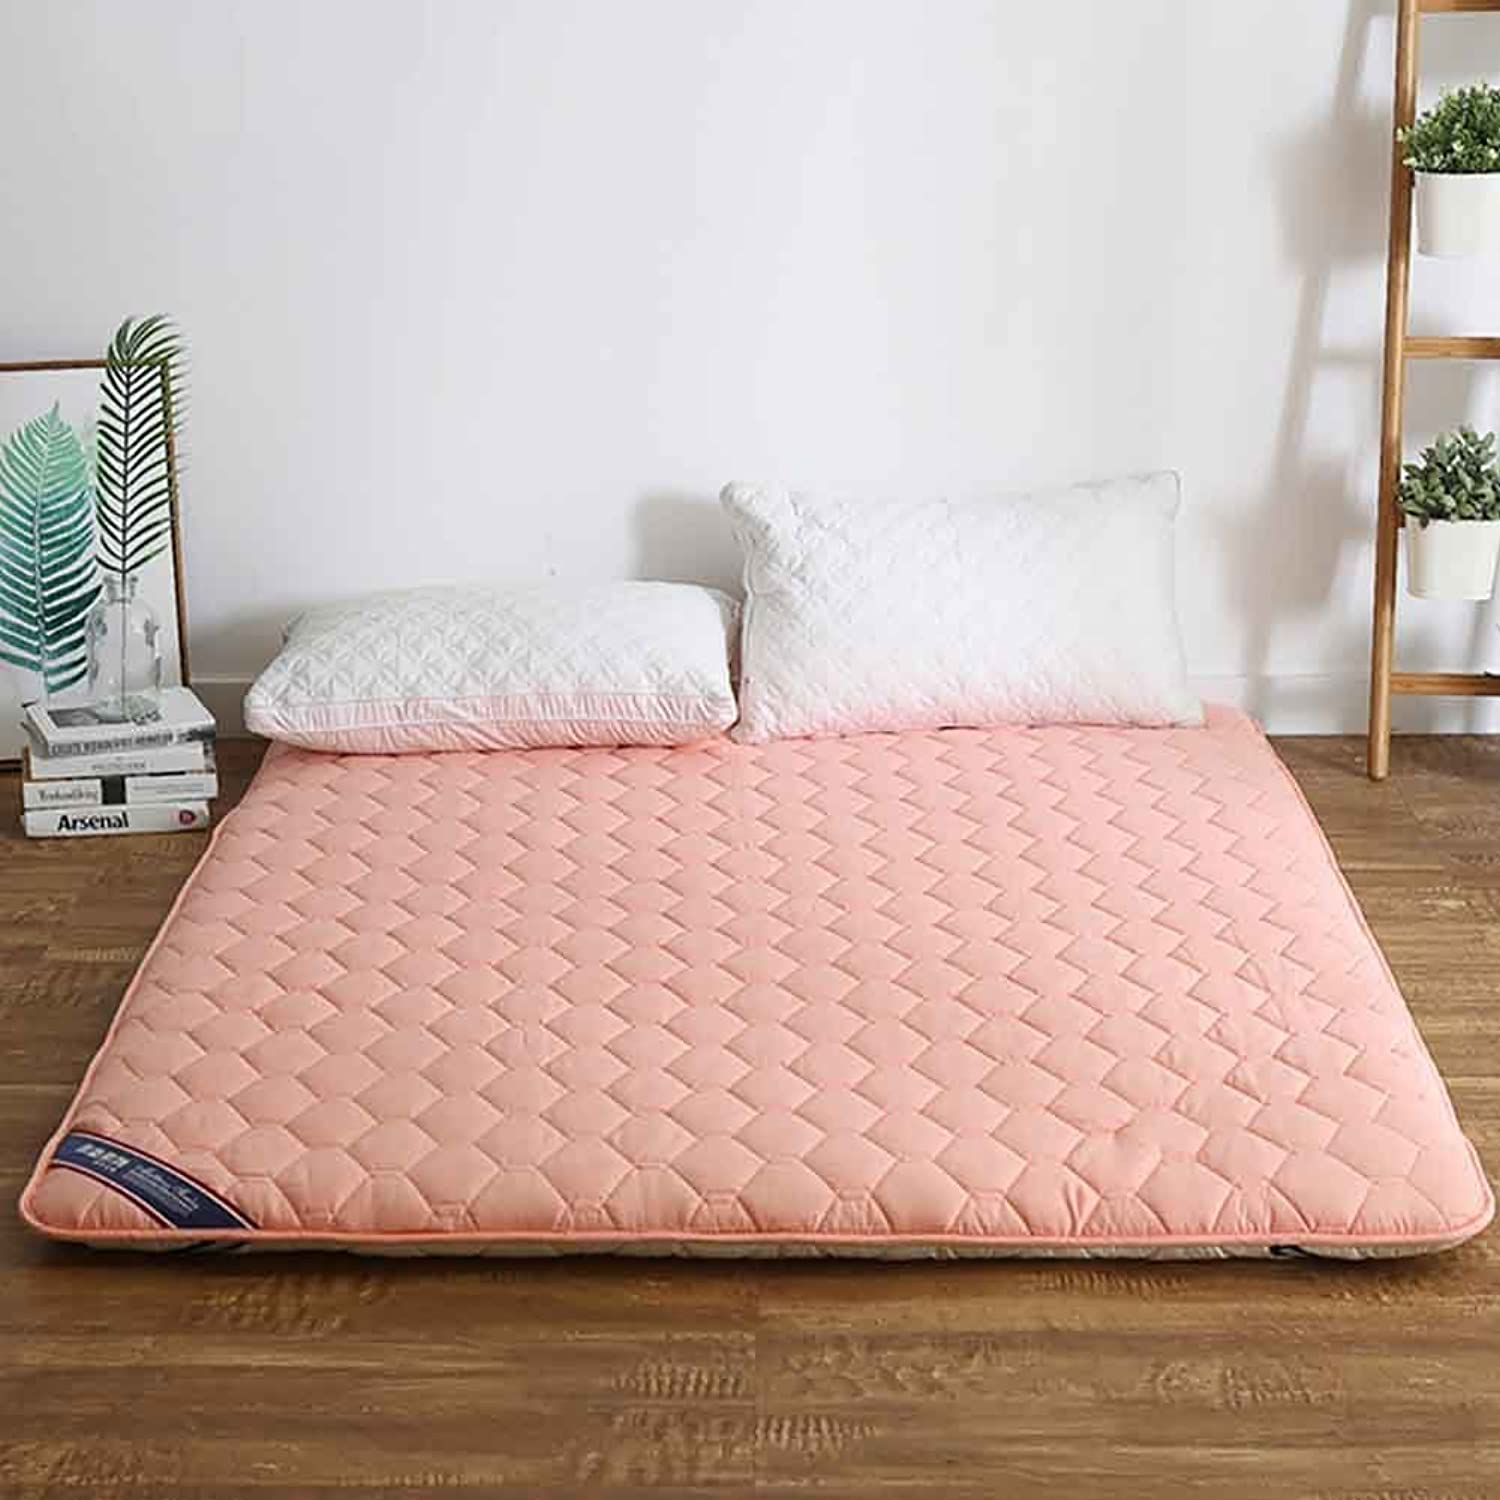 Cotton Mattress Mattress,Tatami Student Dormitory Mattress Cotton Padded Multi Layer Tufted Futon Mattress-B 120x200cm(47x79inch)